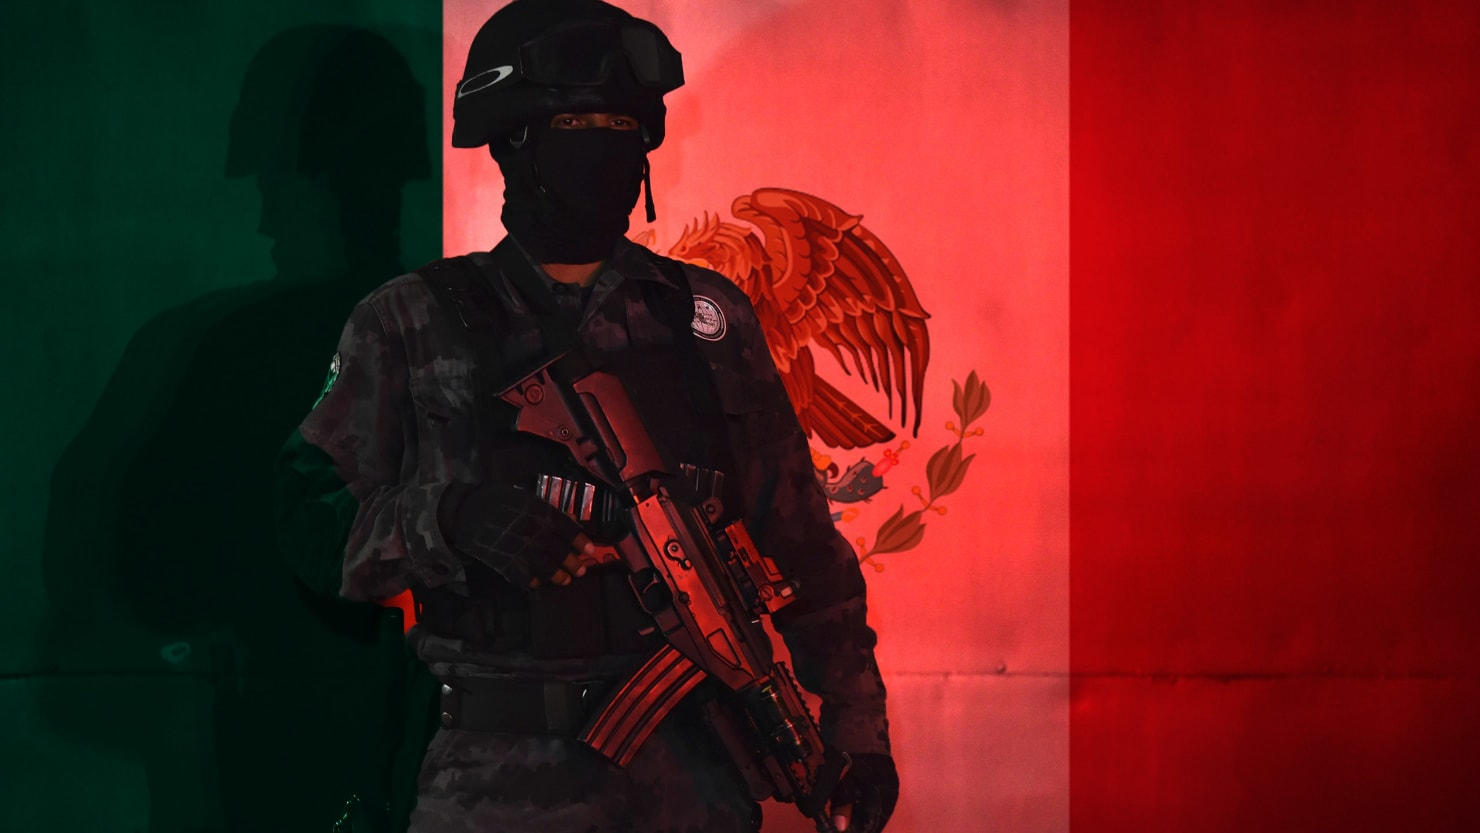 drug war violence is skyrocketing in mexico central american countries like el salvador and honduras are now saddled with some of the highest homicide